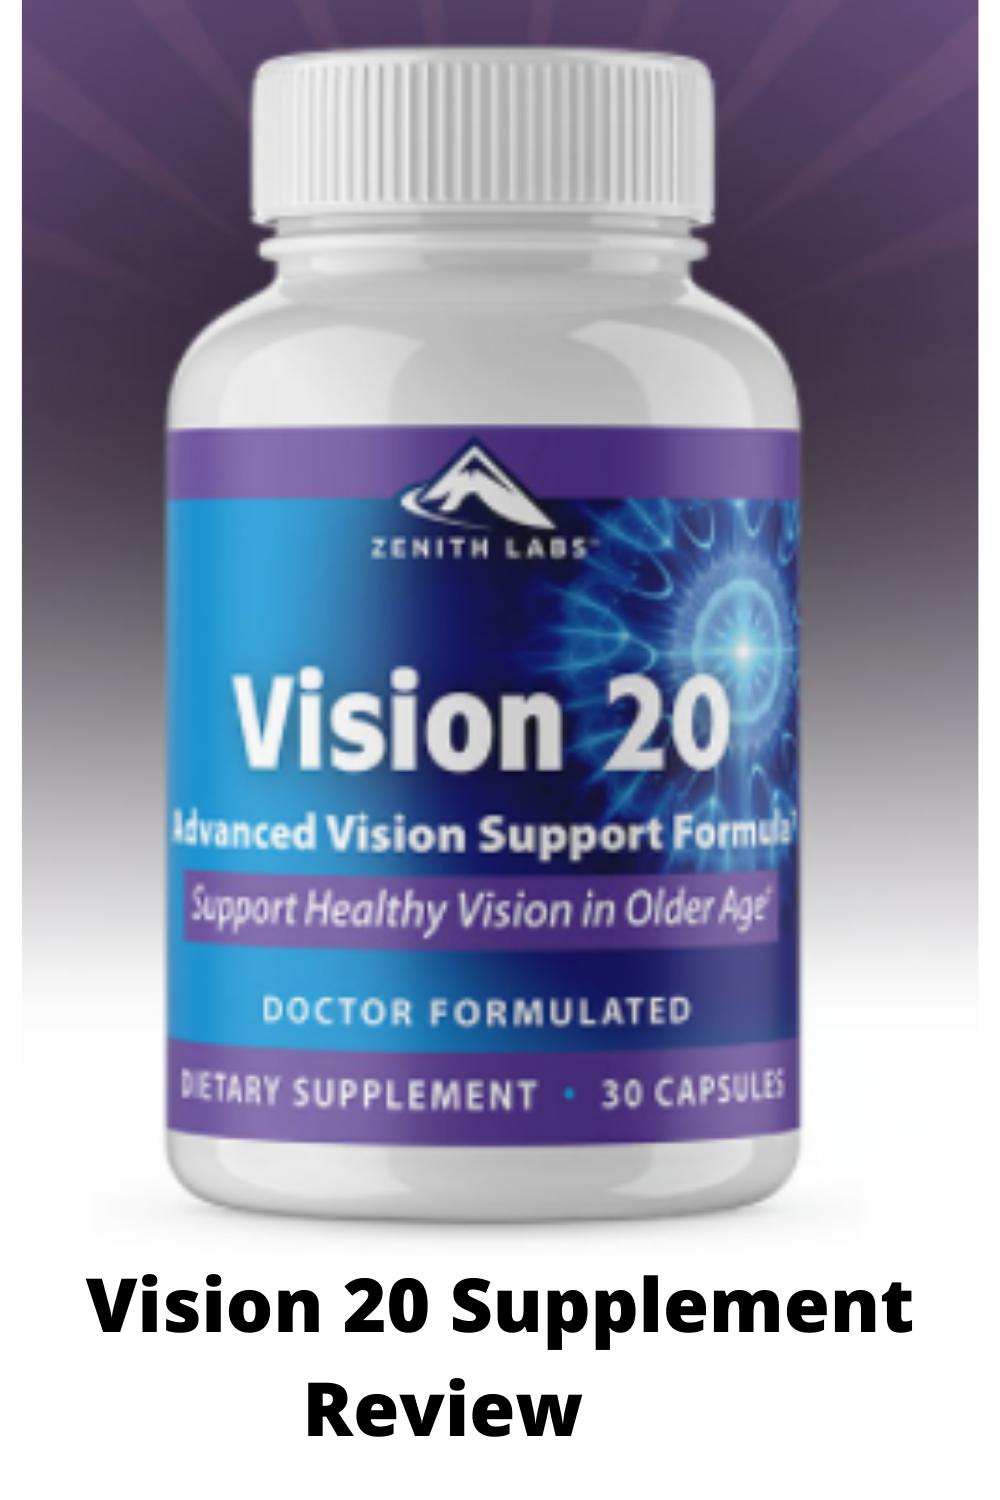 Vision 20 Supplement Reviews